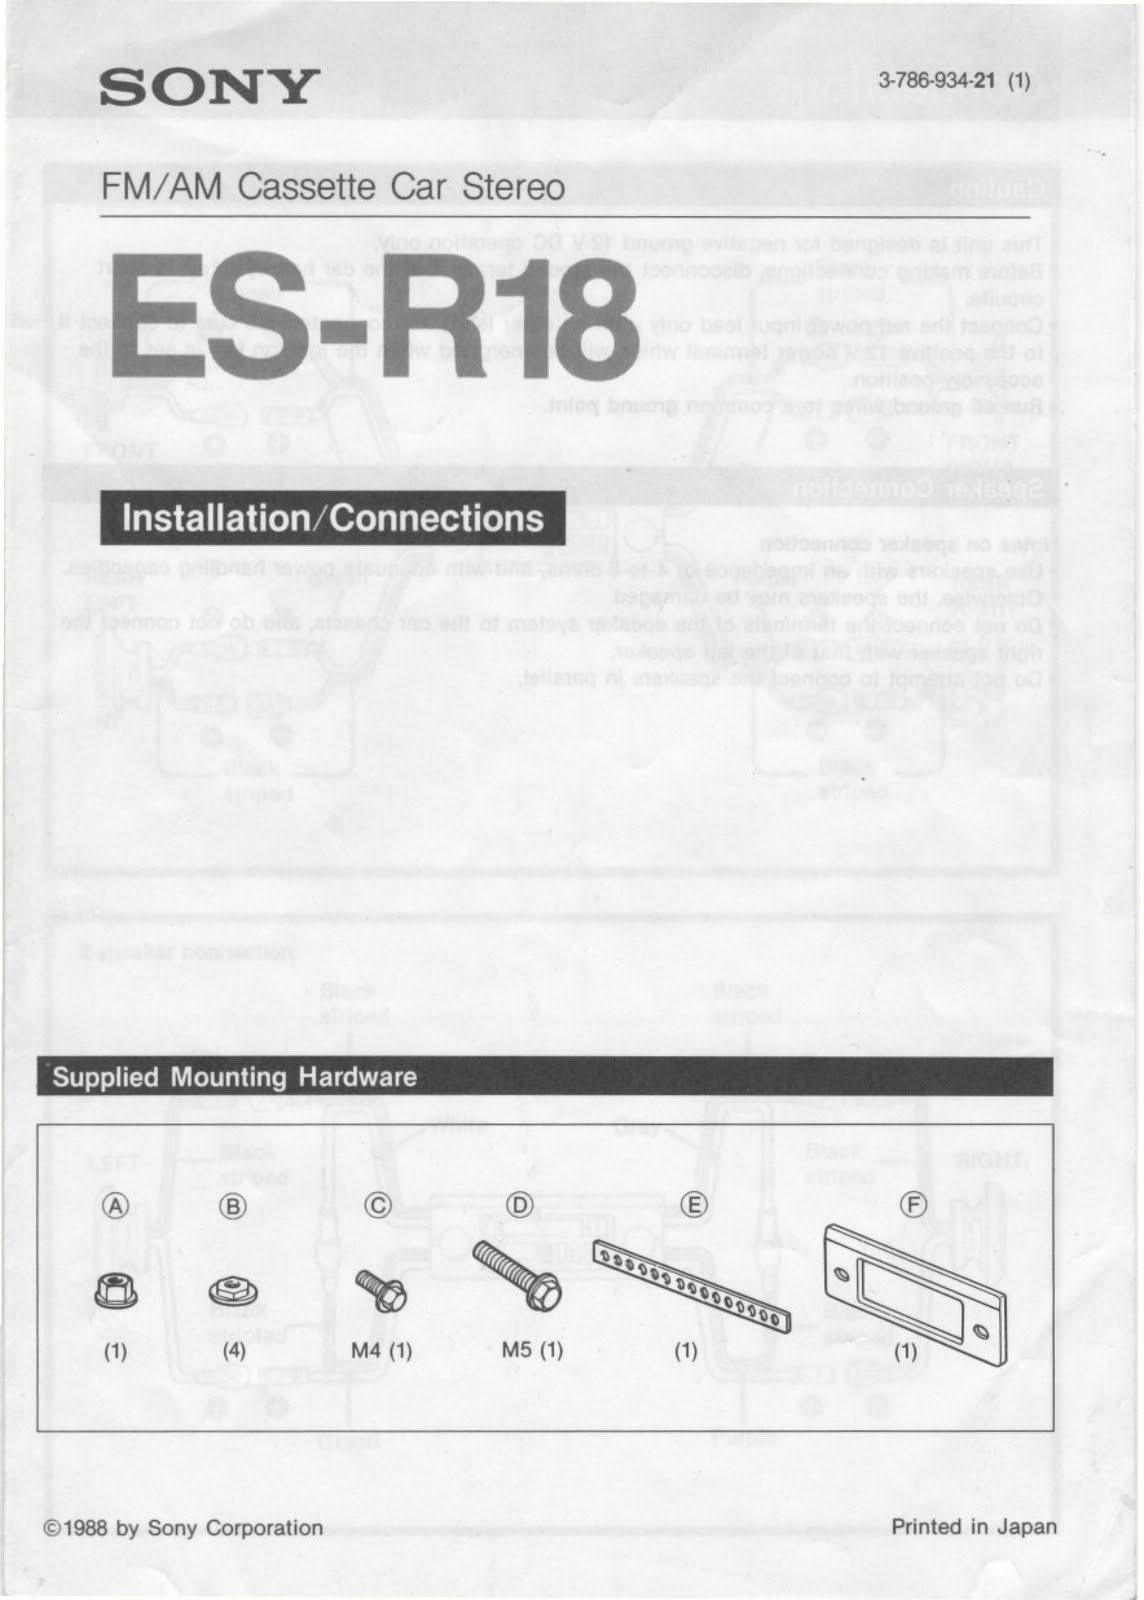 1983 Fleetwood Pace Arrow Owners Manuals Sony Model Es R18 Am Fm Car Stereo Cass Radio Installation Manual Stock